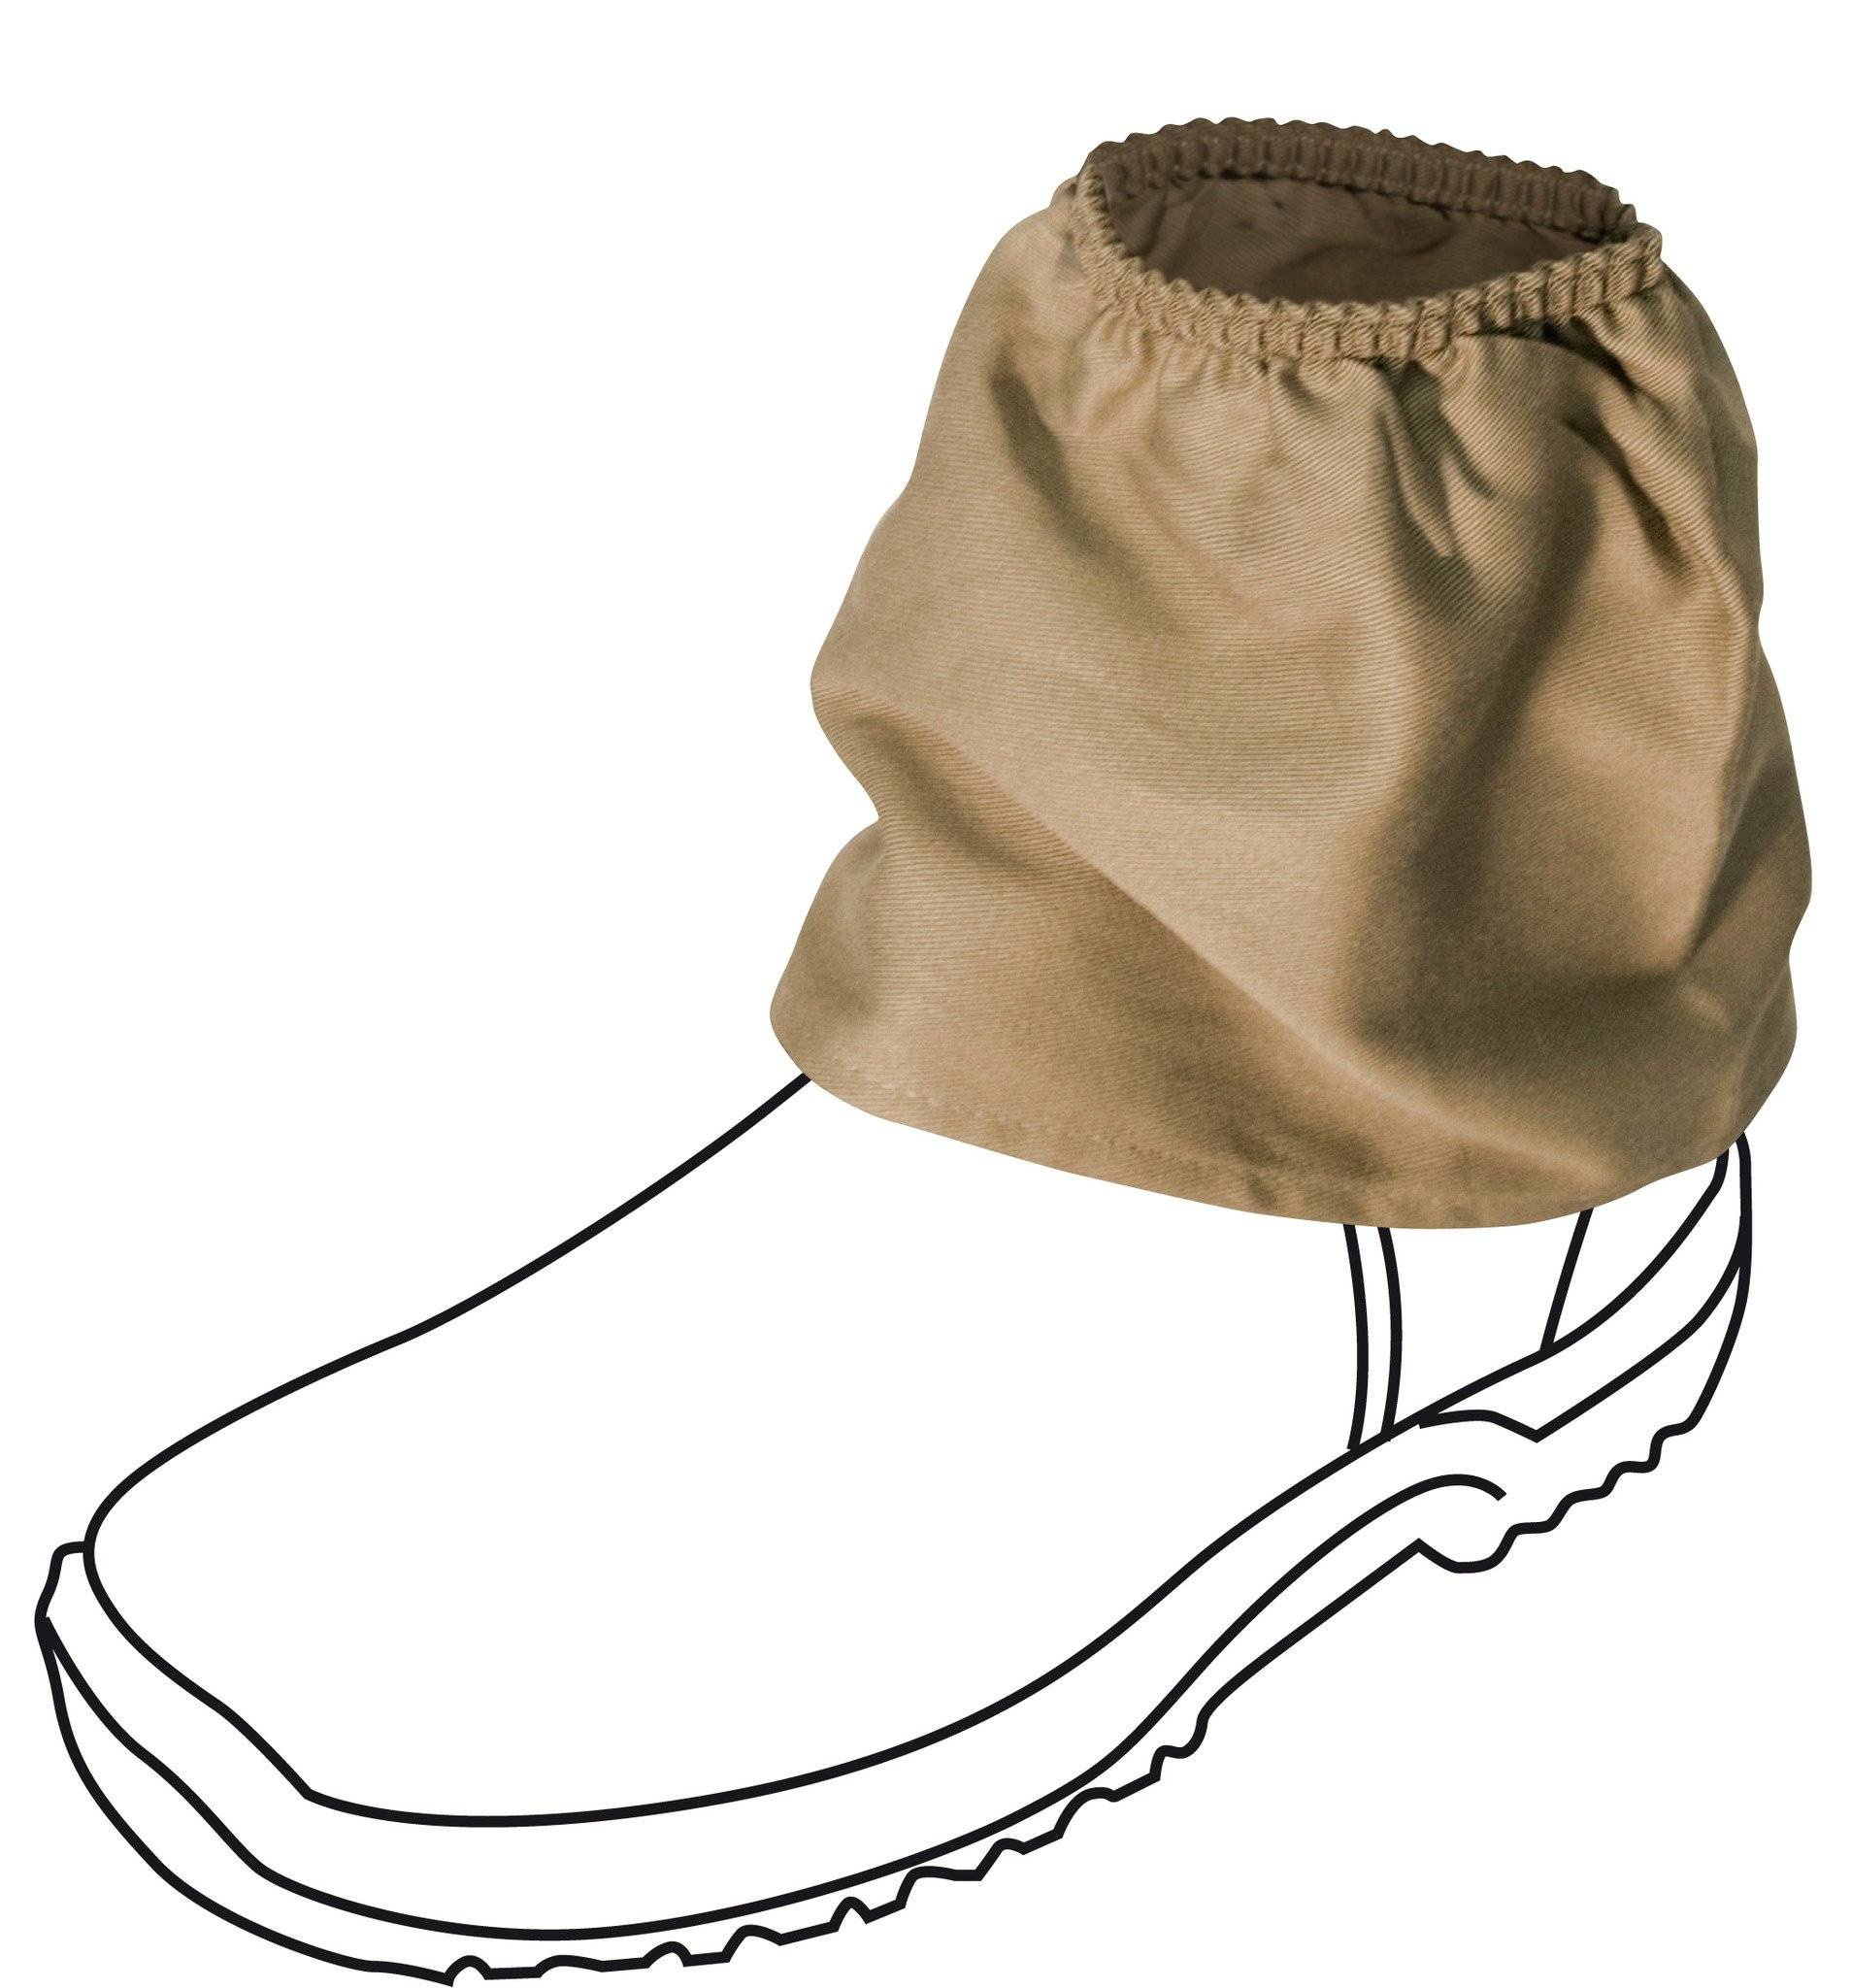 Standard Sox Savers Overboots, image